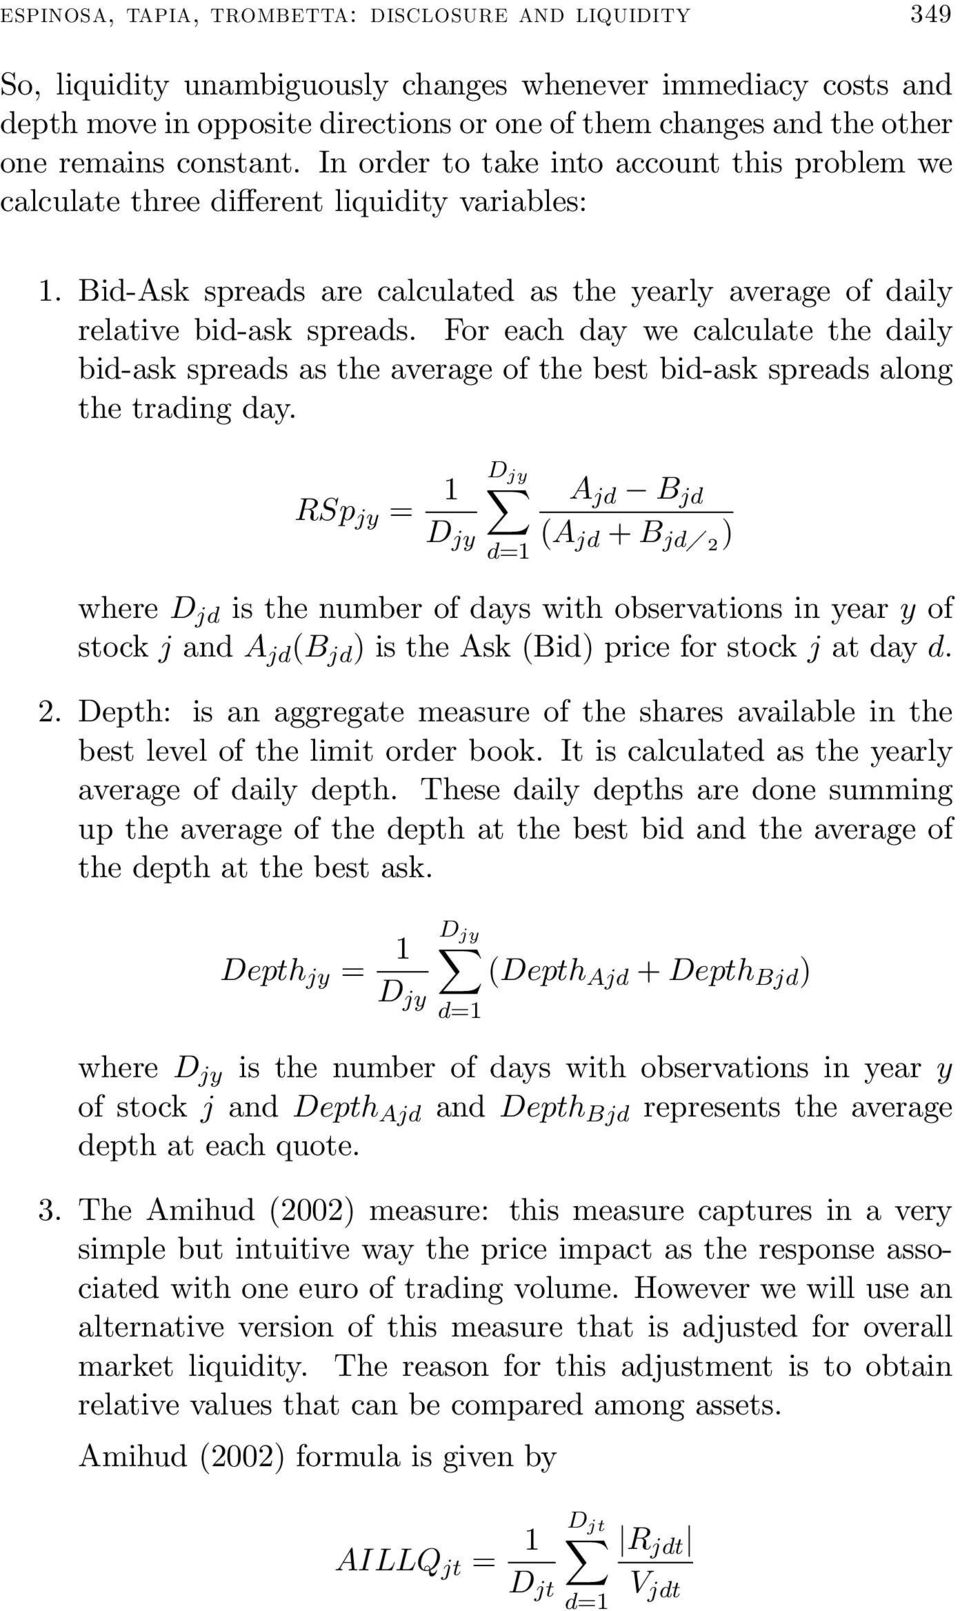 For each day we calculate the daily bid-ask spreads as the average of the best bid-ask spreads along the trading day.